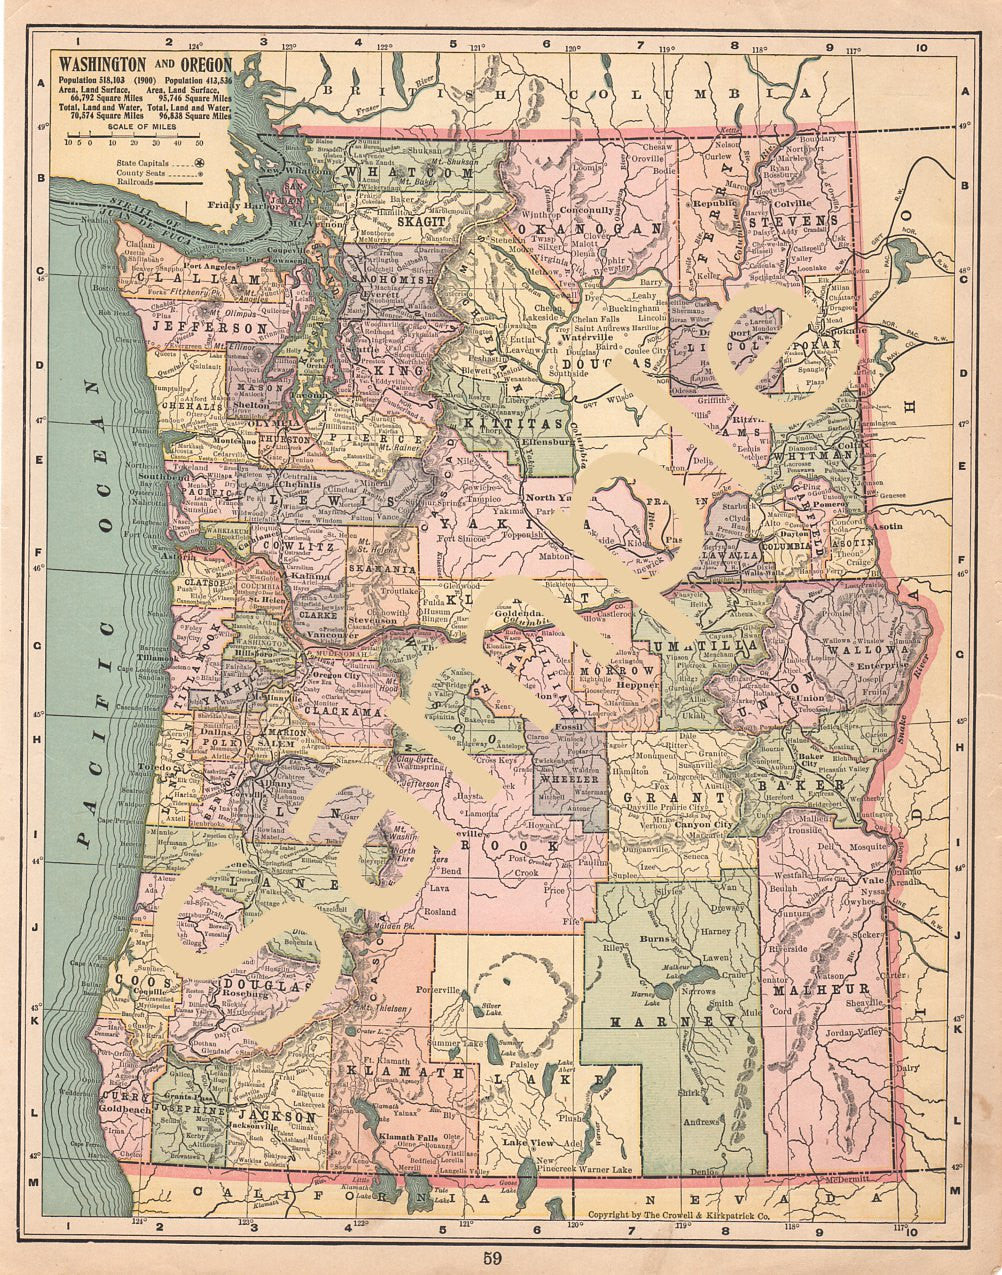 Printable Old Map of Washington State and Oregon Instant Cartography on aerial view of oregon state, printable map of washington state, google maps of oregon state, printable map of oregon counties, printable map of ny state, printable map of kentucky state, topographical map of oregon state, printable blank maps oregon, geography of oregon state, home of oregon state, printable map of oregon zip code, interactive map of oregon state, printable map of salem oregon, printable map of southern oregon, printable map of new york state, wildlife of oregon state,